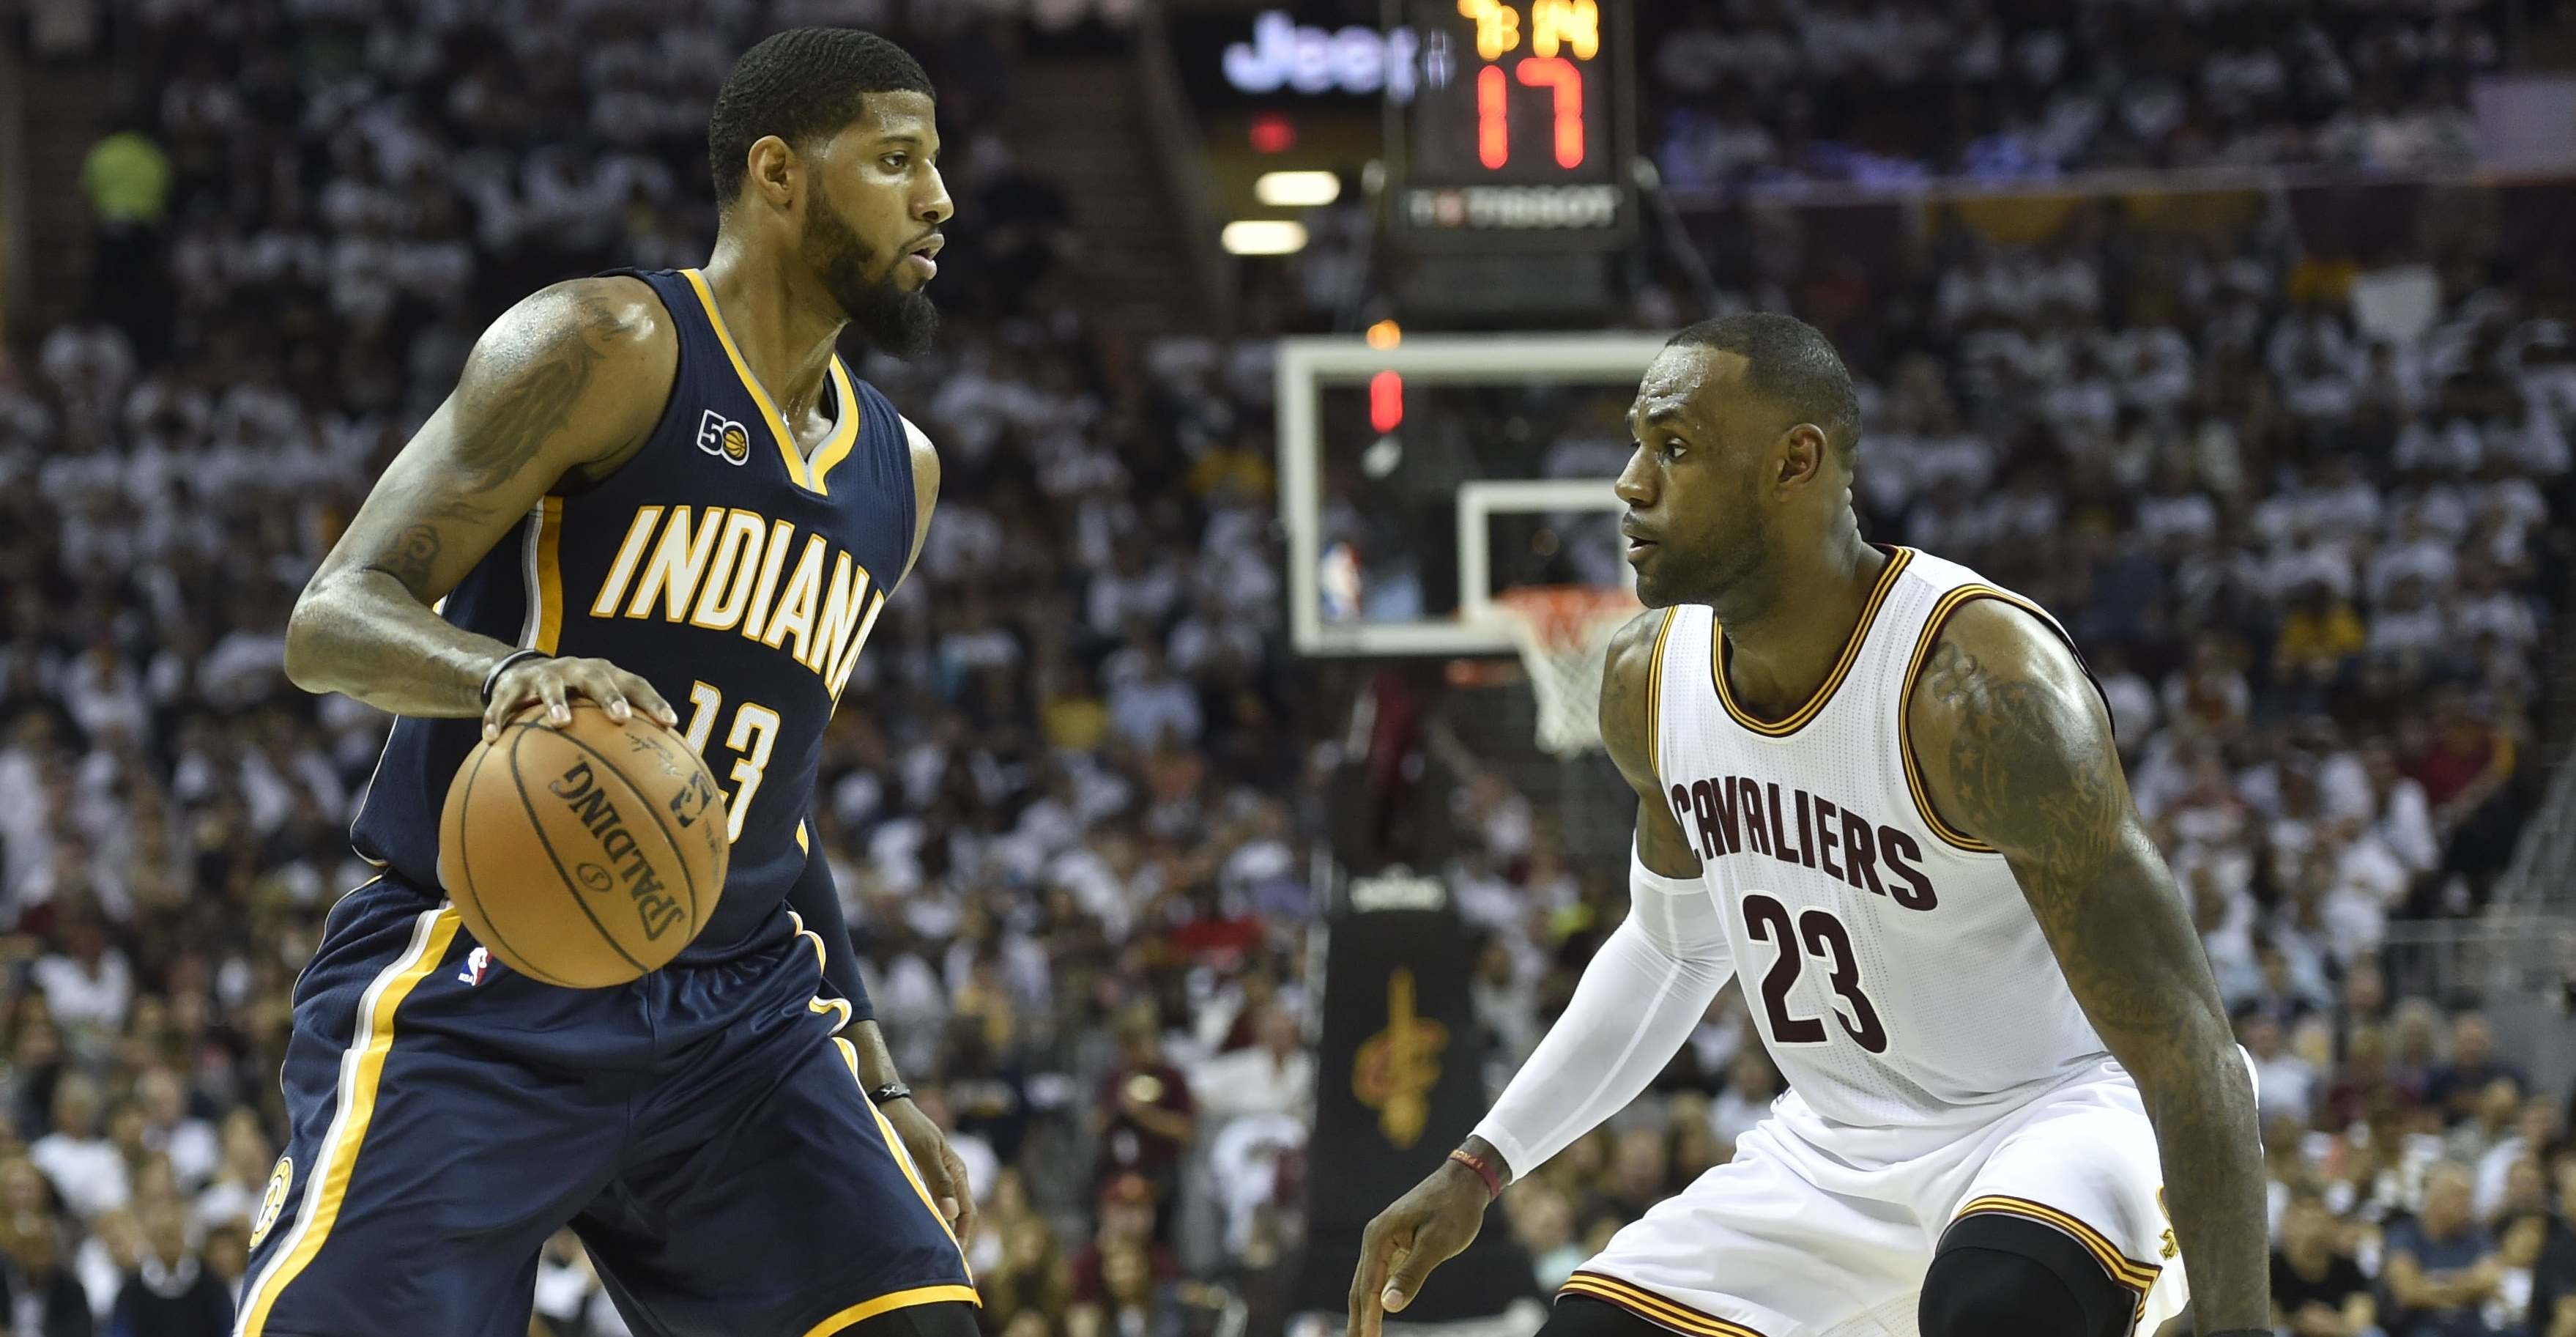 Apr 15, 2017; Cleveland, OH, USA; Indiana Pacers forward Paul George (13) dribbles against Cleveland Cavaliers forward LeBron James (23) in the second quarter in game one of the first round of the 2017 NBA Playoffs at Quicken Loans Arena. Mandatory Credit: David Richard-USA TODAY Sports